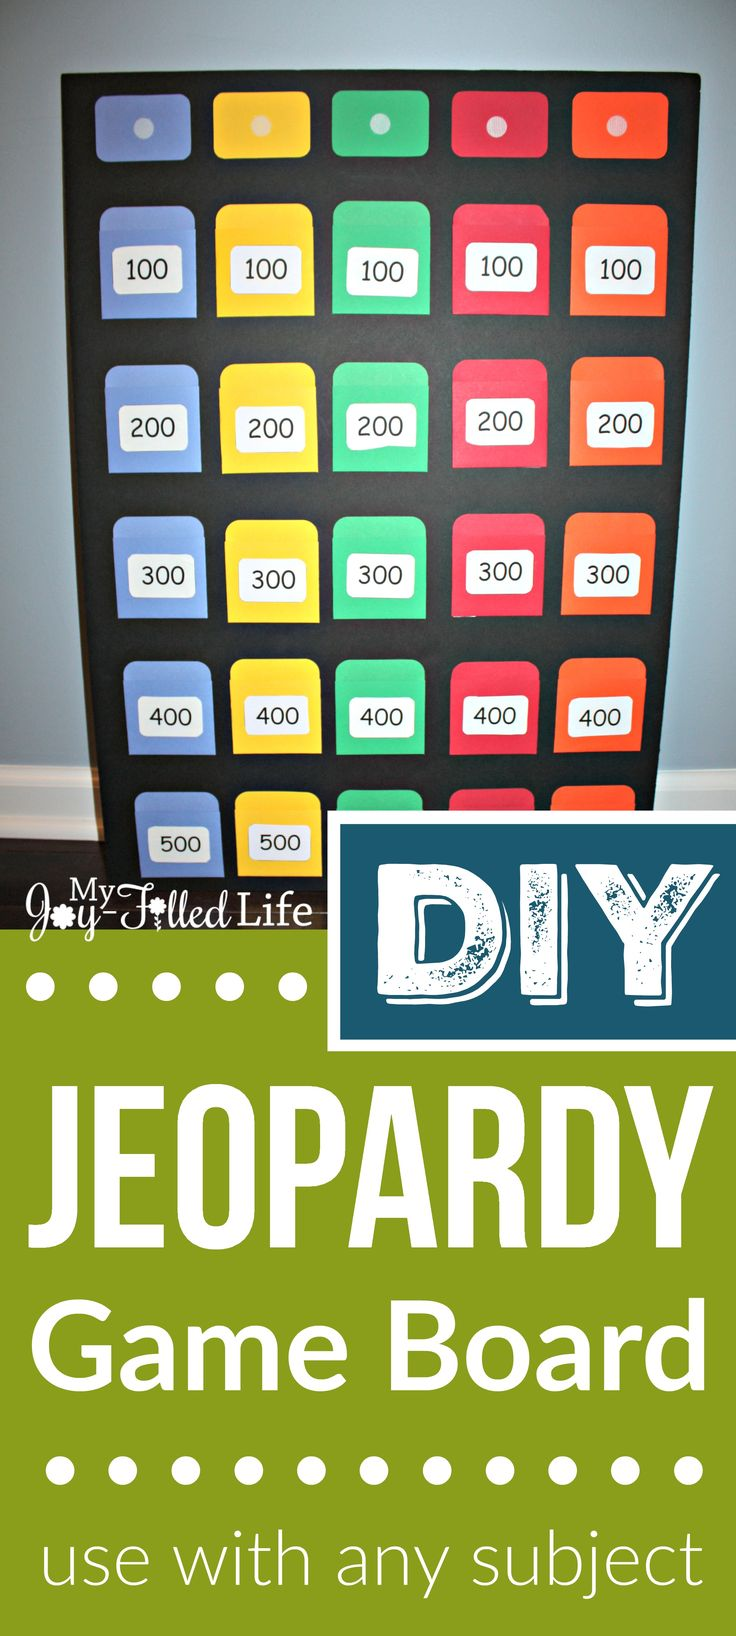 Best 25 science games ideas on pinterest science games for kids diy jeopardy game board urtaz Image collections